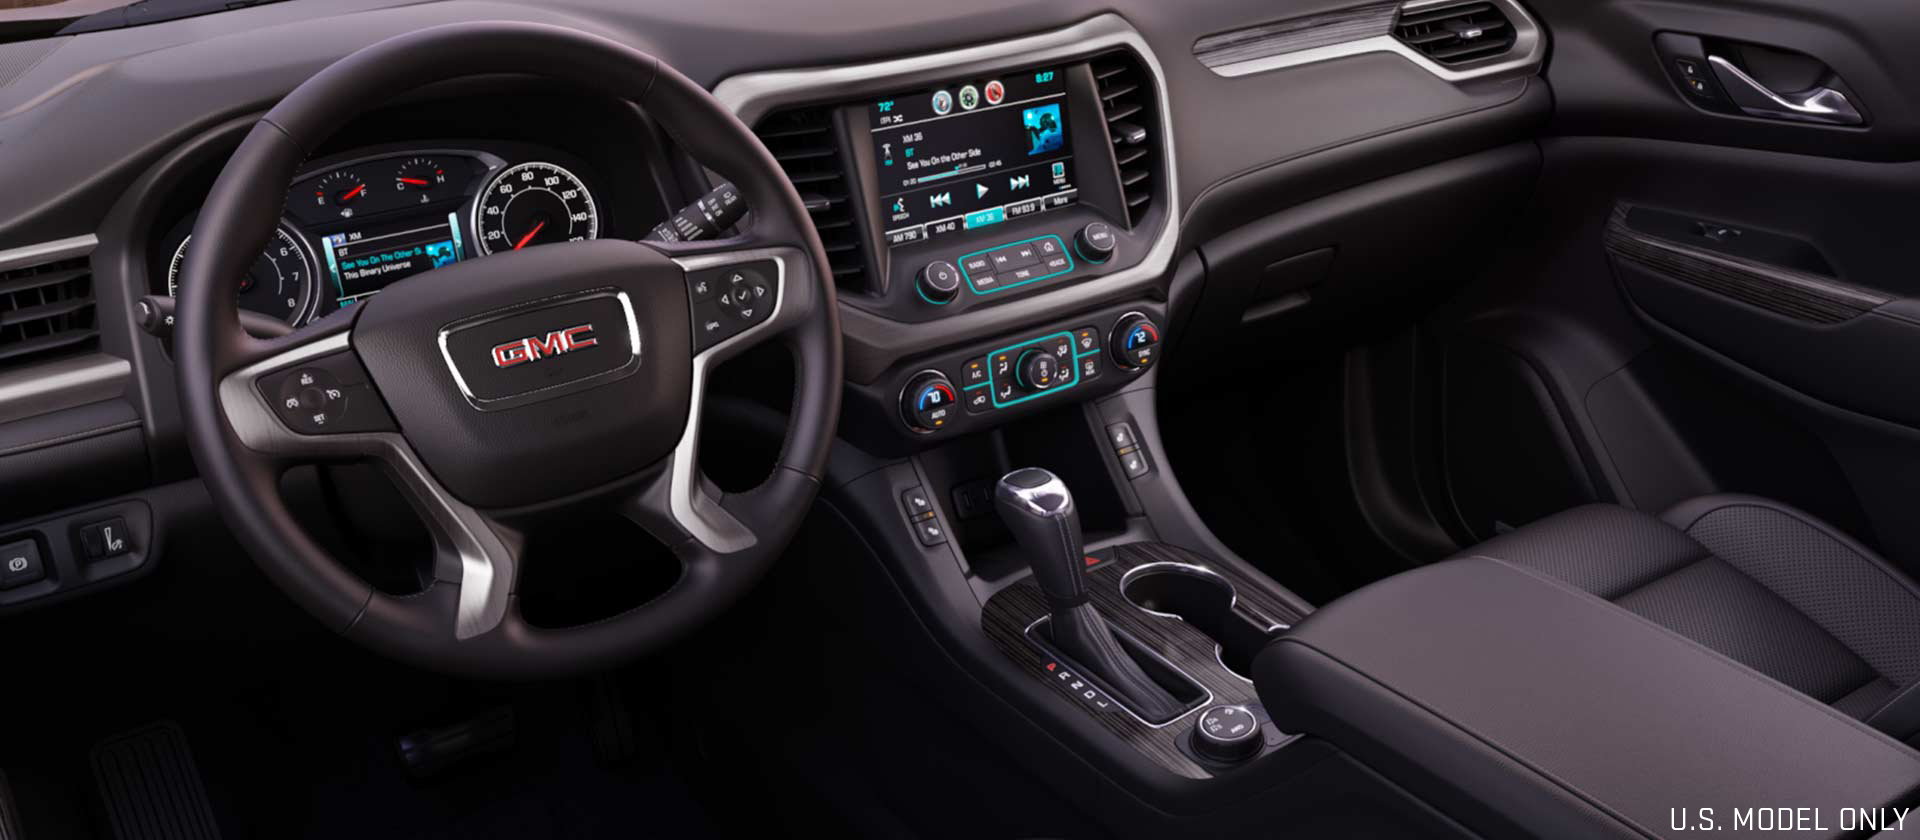 Interior of the 2018 GMC Acadia